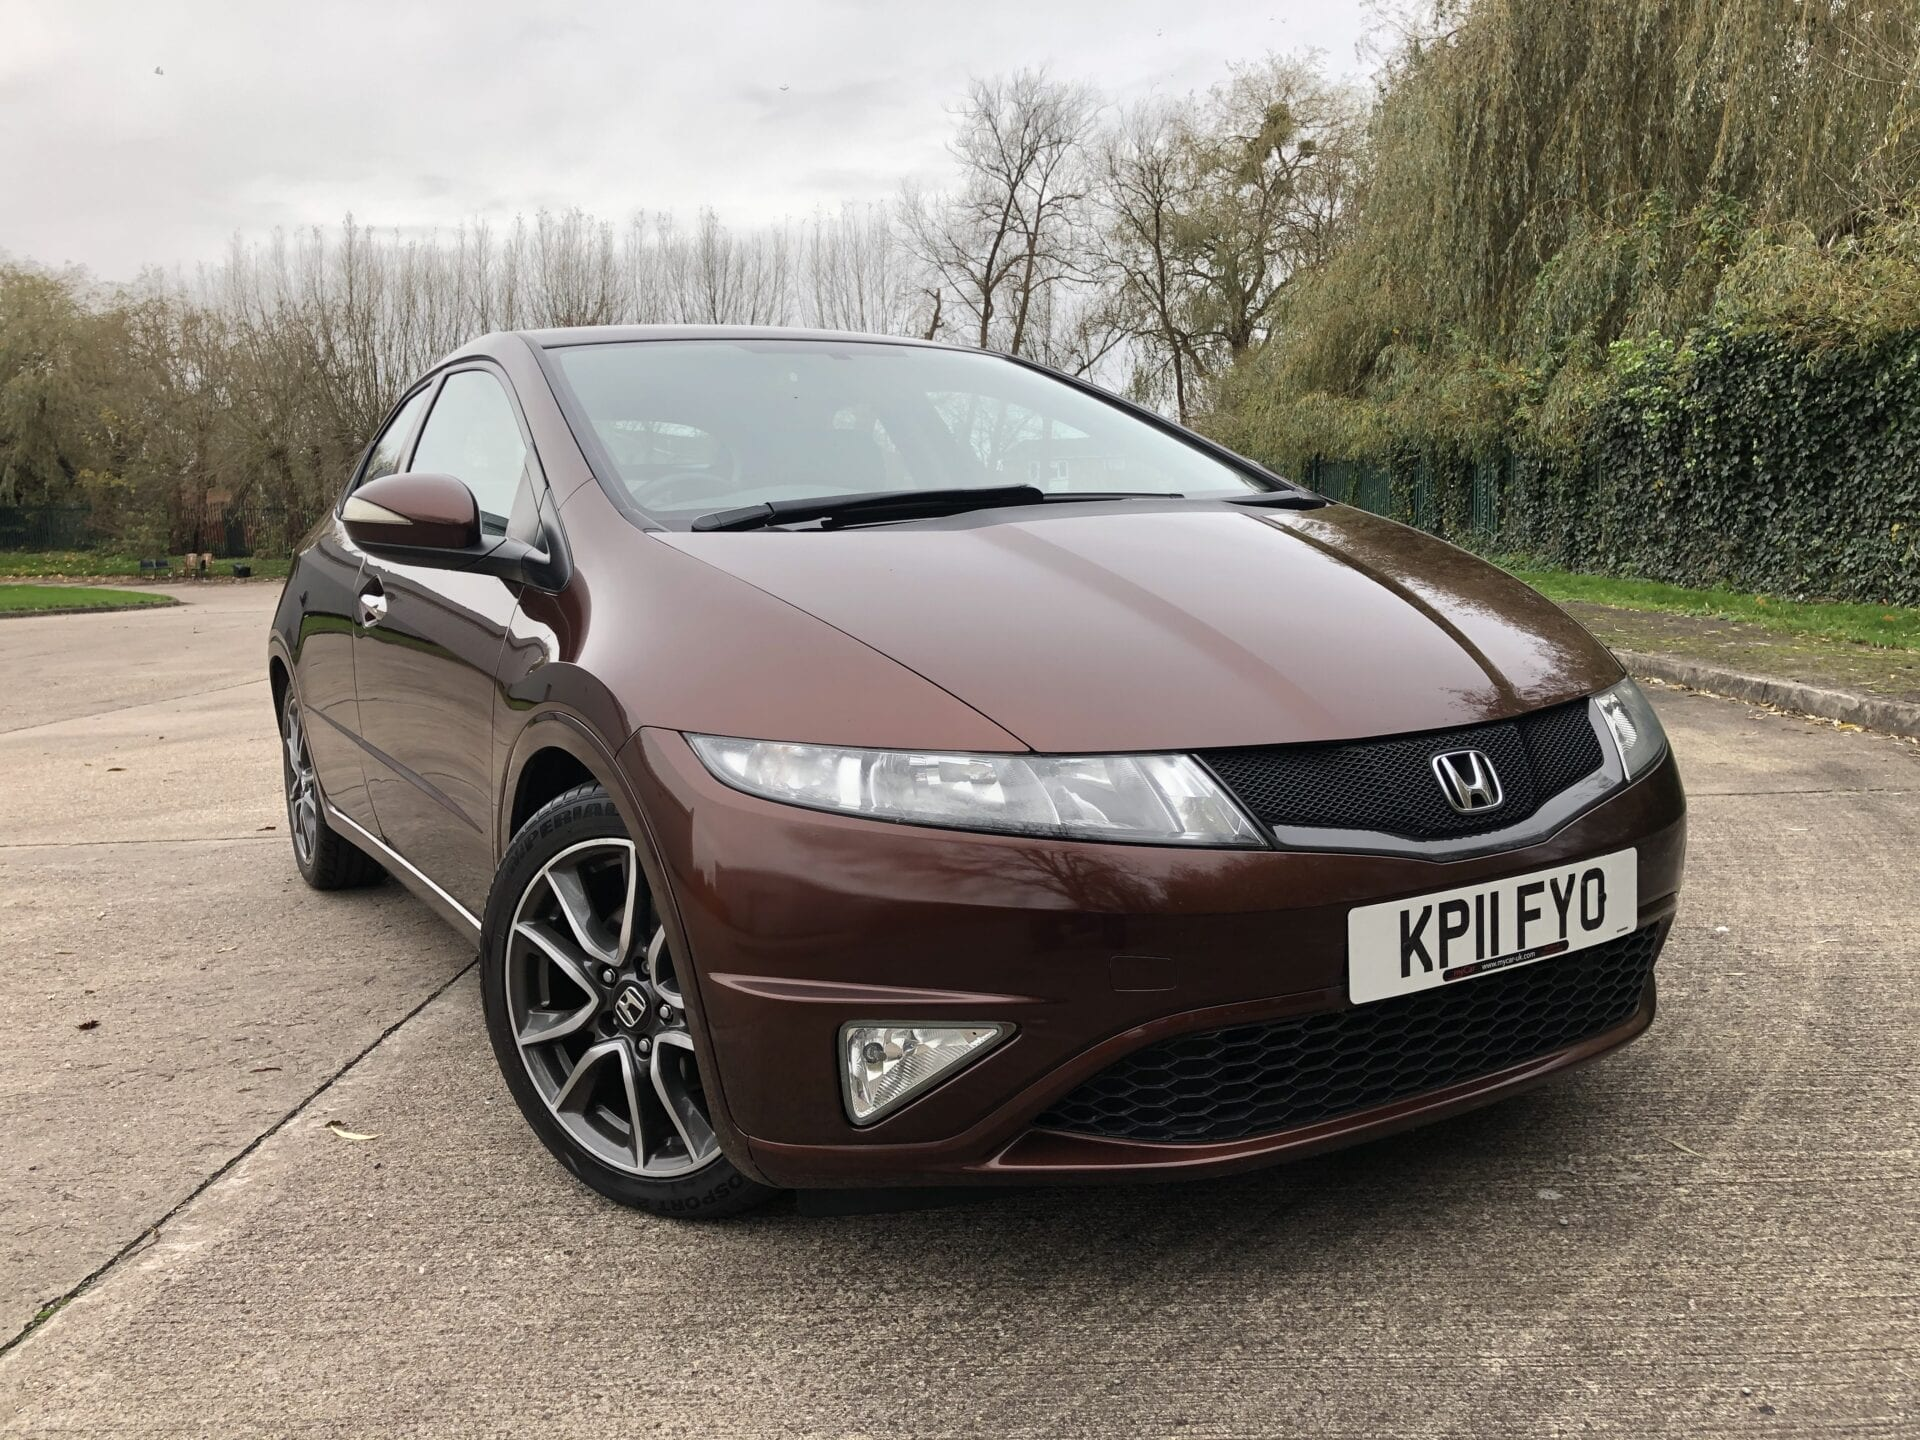 myCar UK - 2011 Honda Civic 1.8 Si 5dr